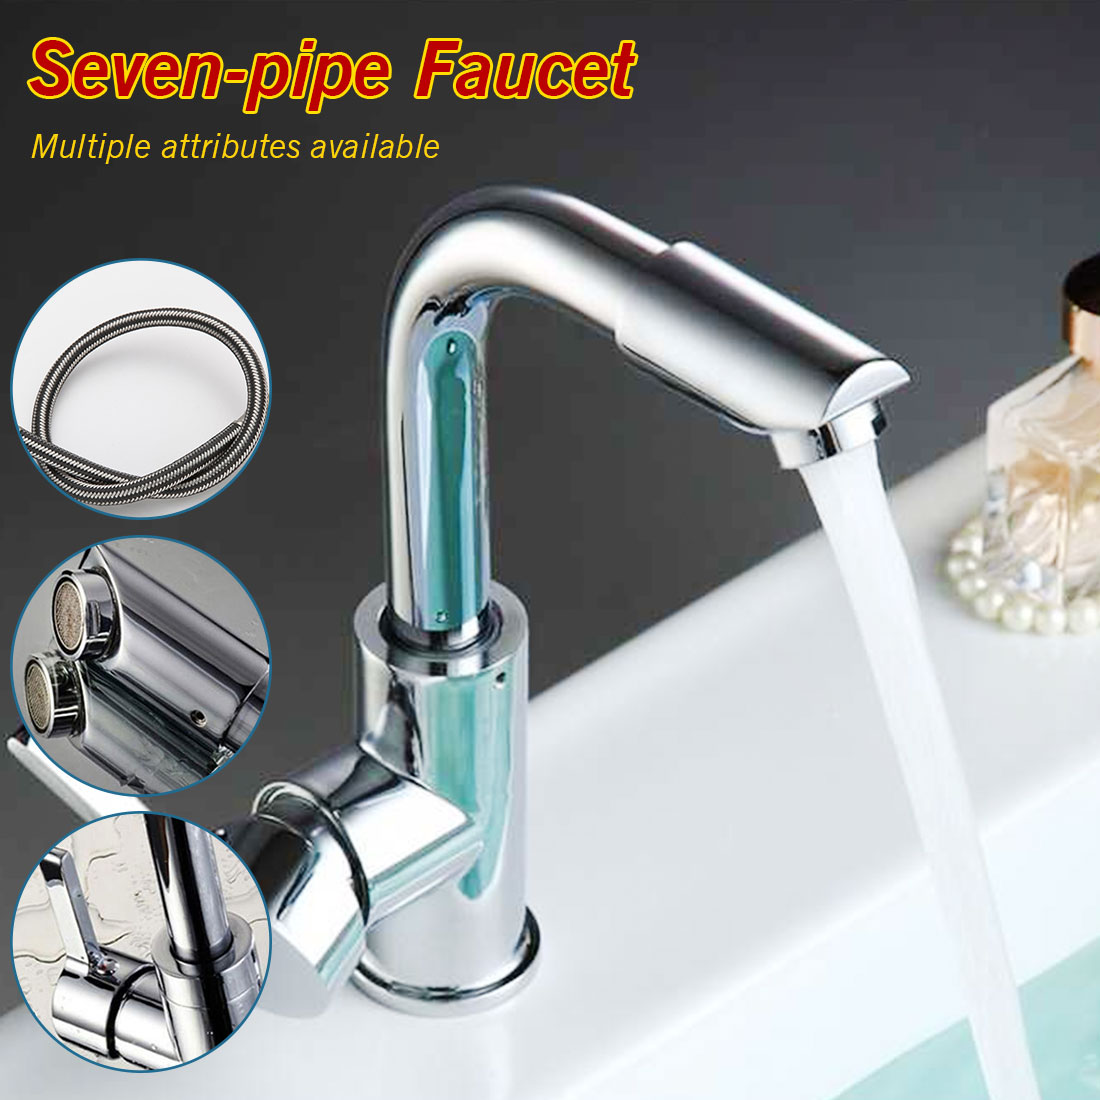 Bathroom Faucets Mixer 360 Degree Swivel Easy Wash for Basin Sink and Kitchen Faucet with 60cm hoses(China)